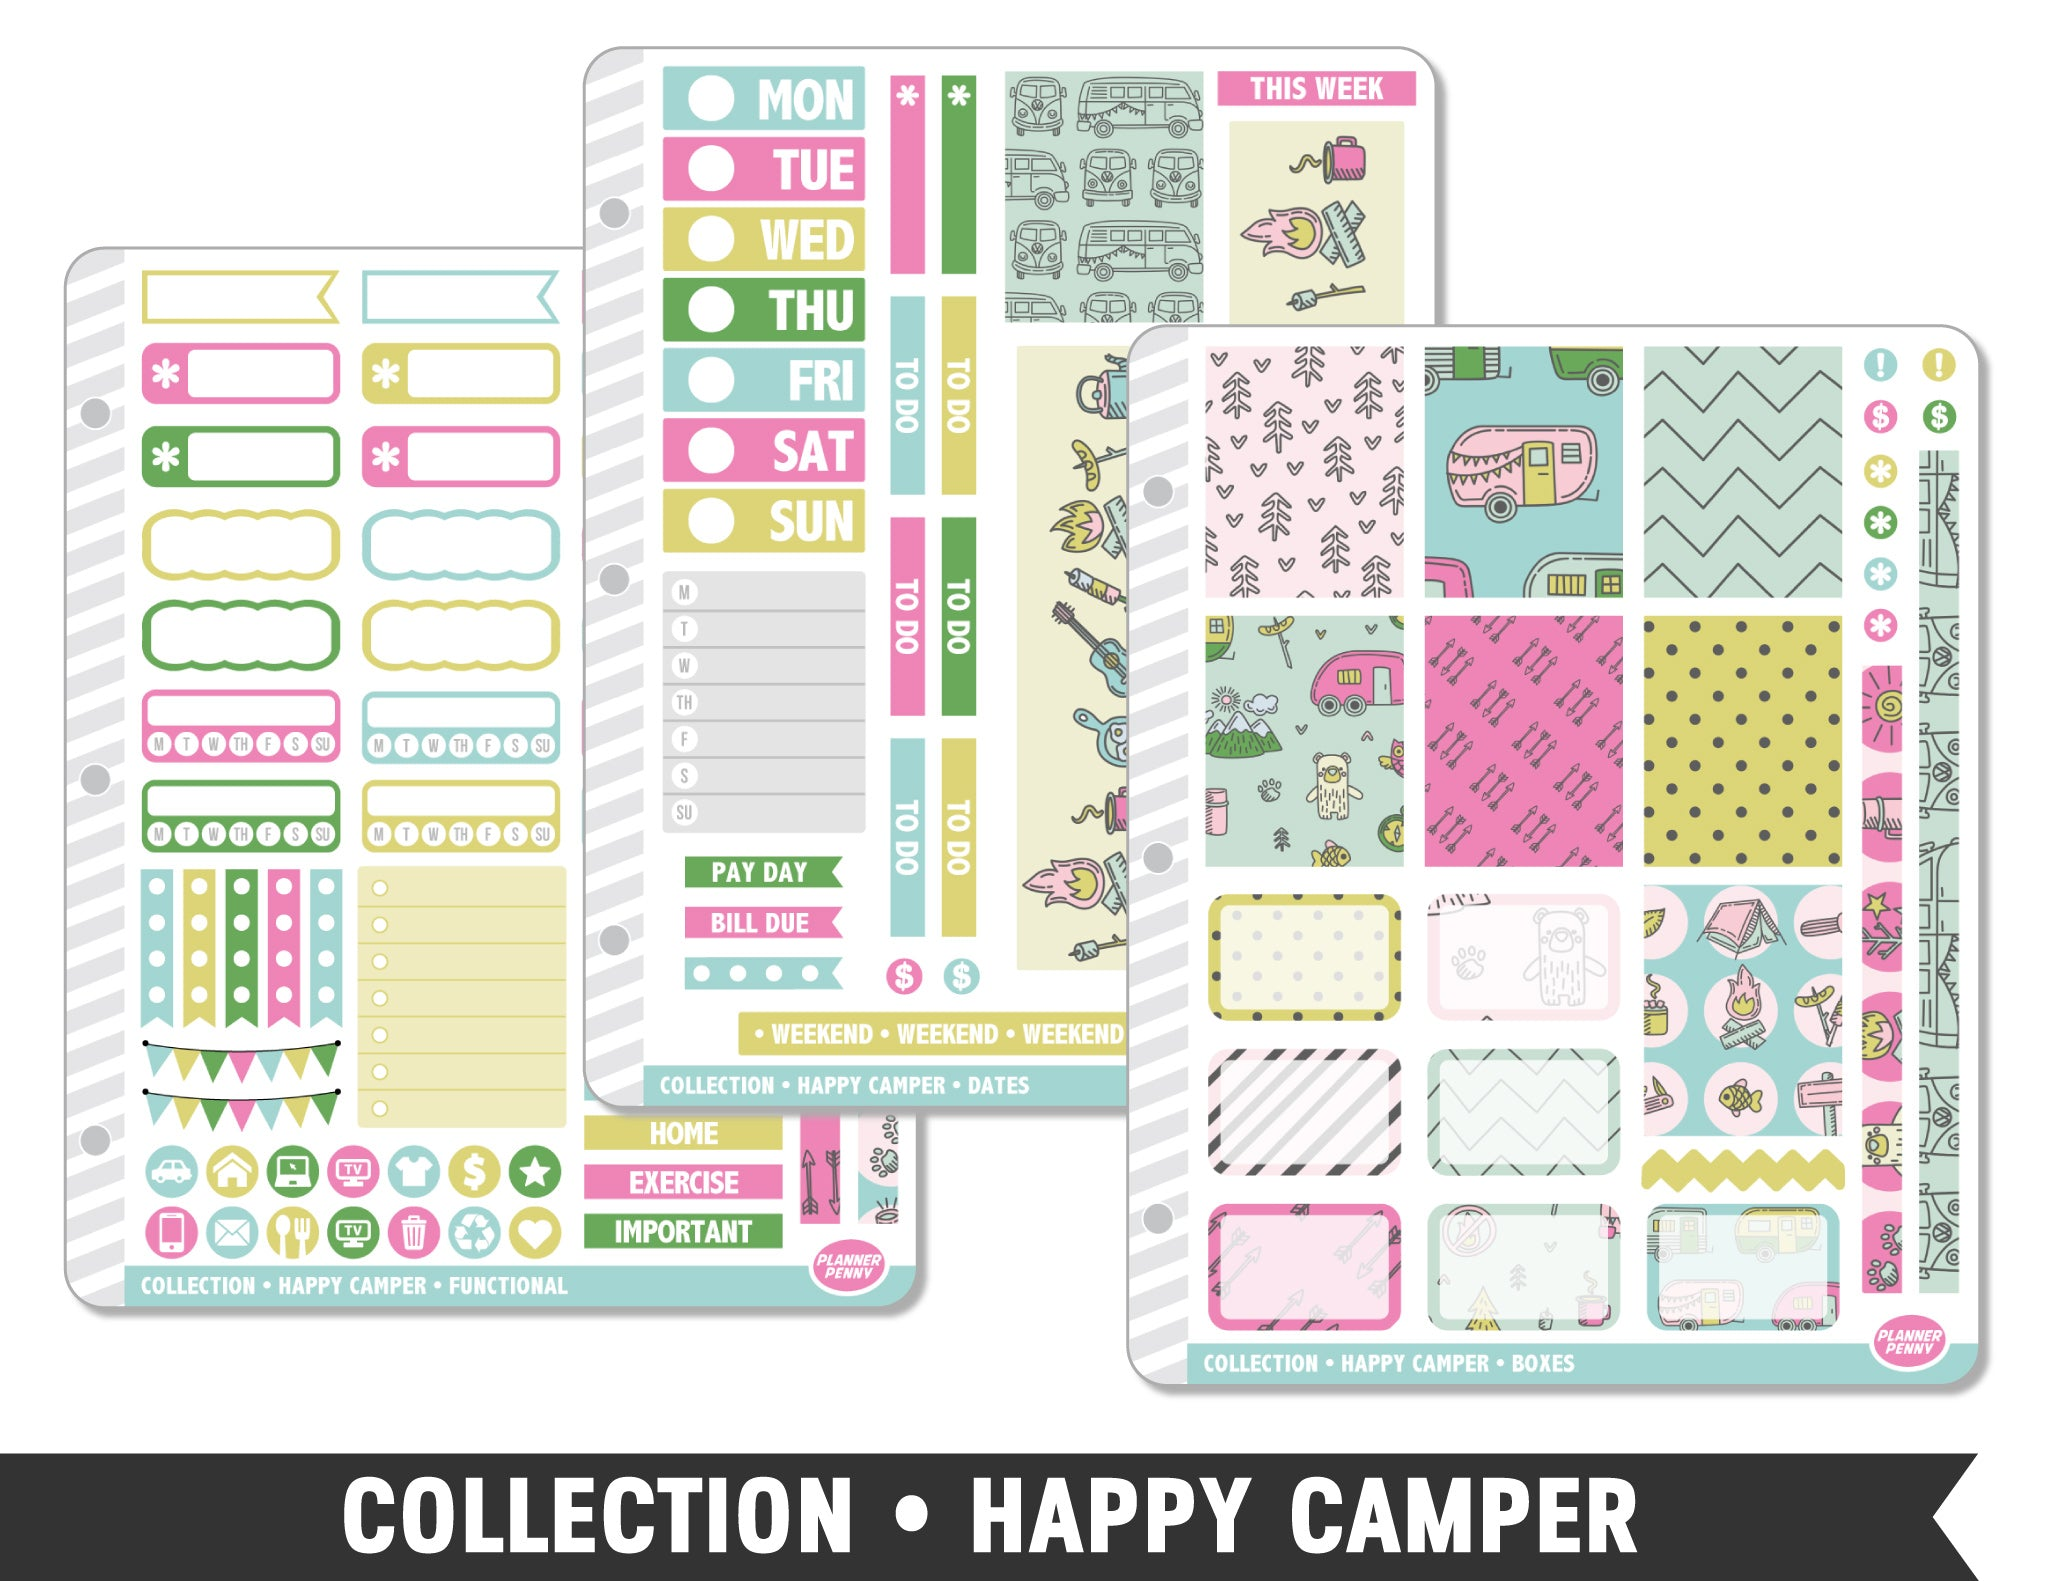 Collection • Happy Camper Planner Stickers